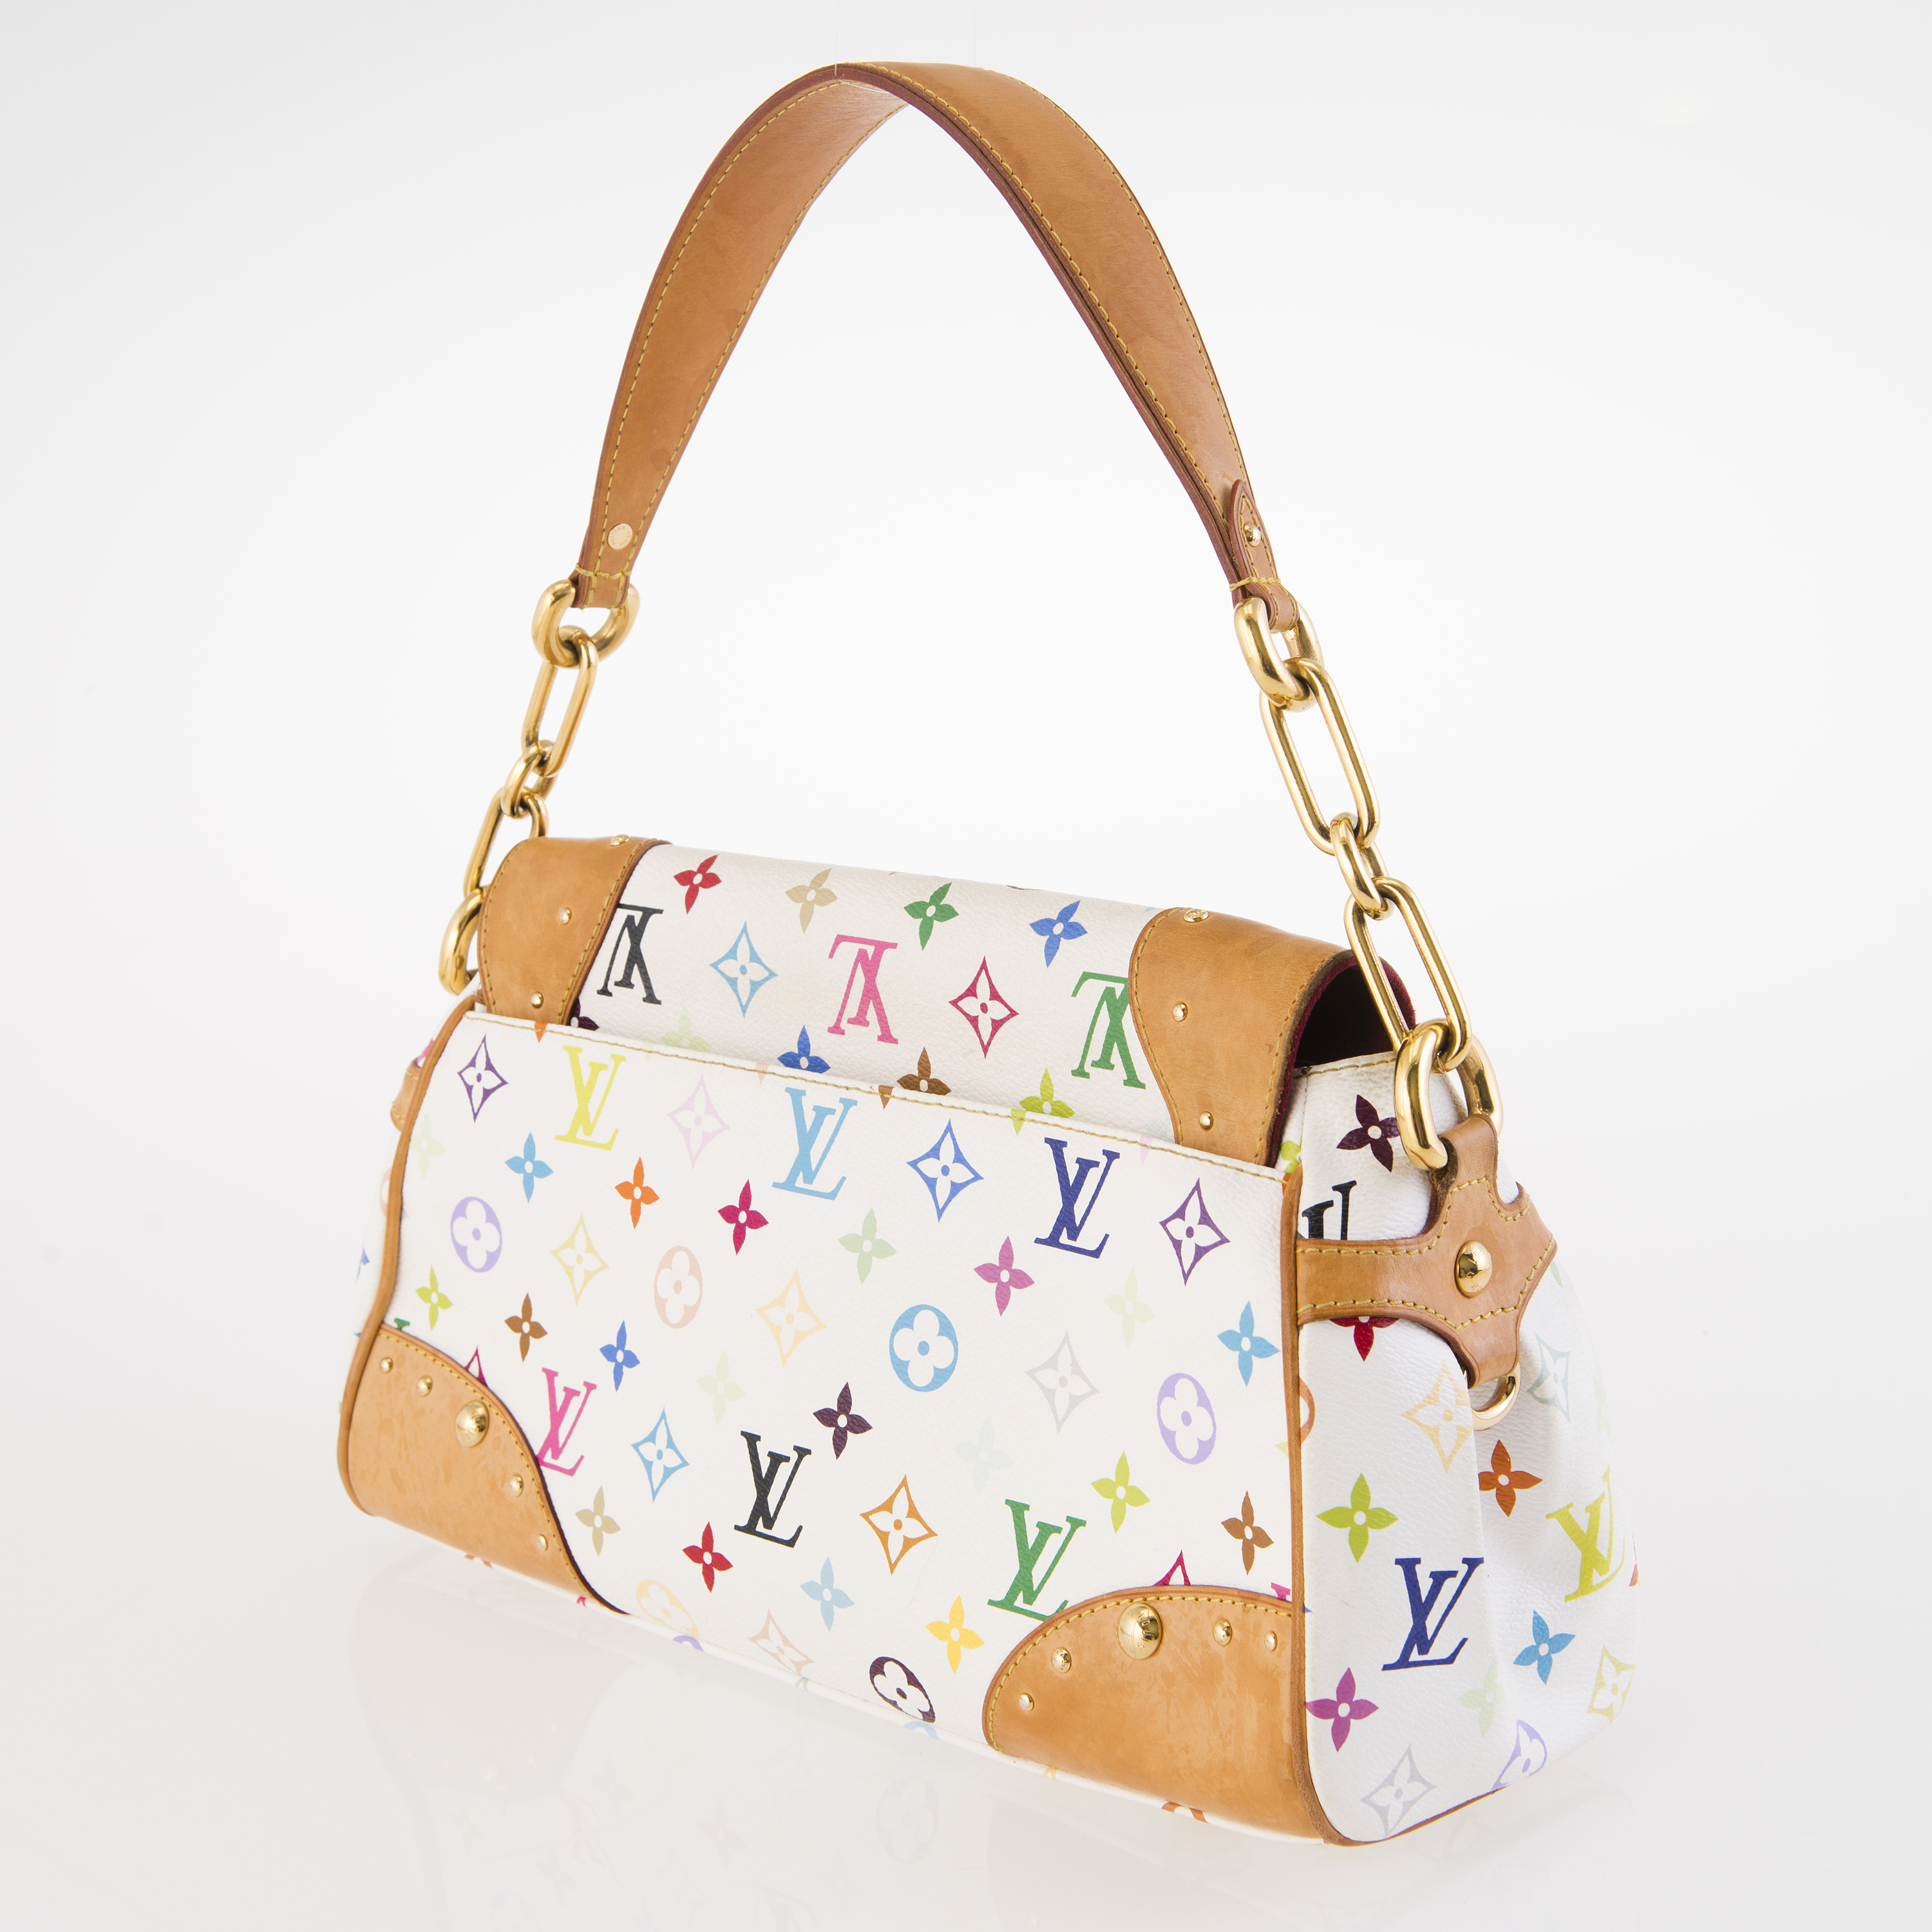 730a3a8e4a0 LOUIS VUITTON White Monogram Multicolor Beverly MM Bag. - Bukowskis